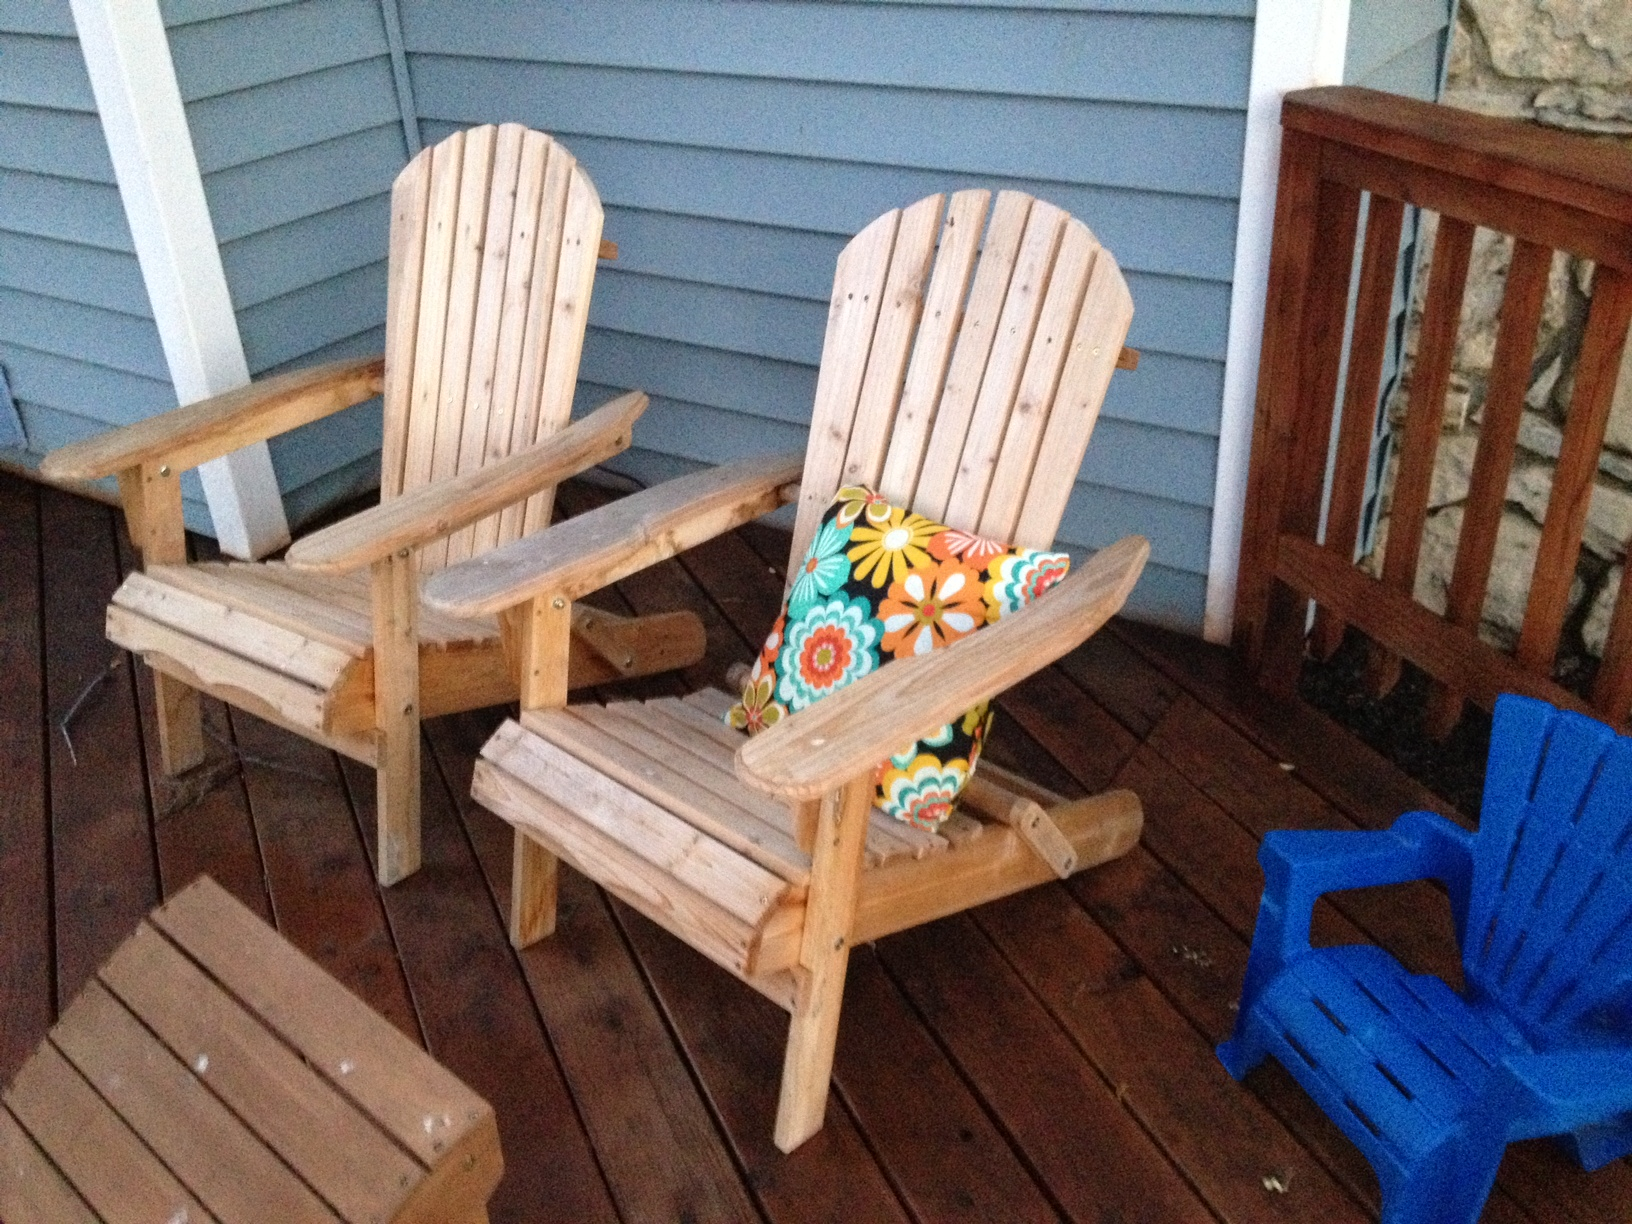 Deck Furniture Adirondack chairs